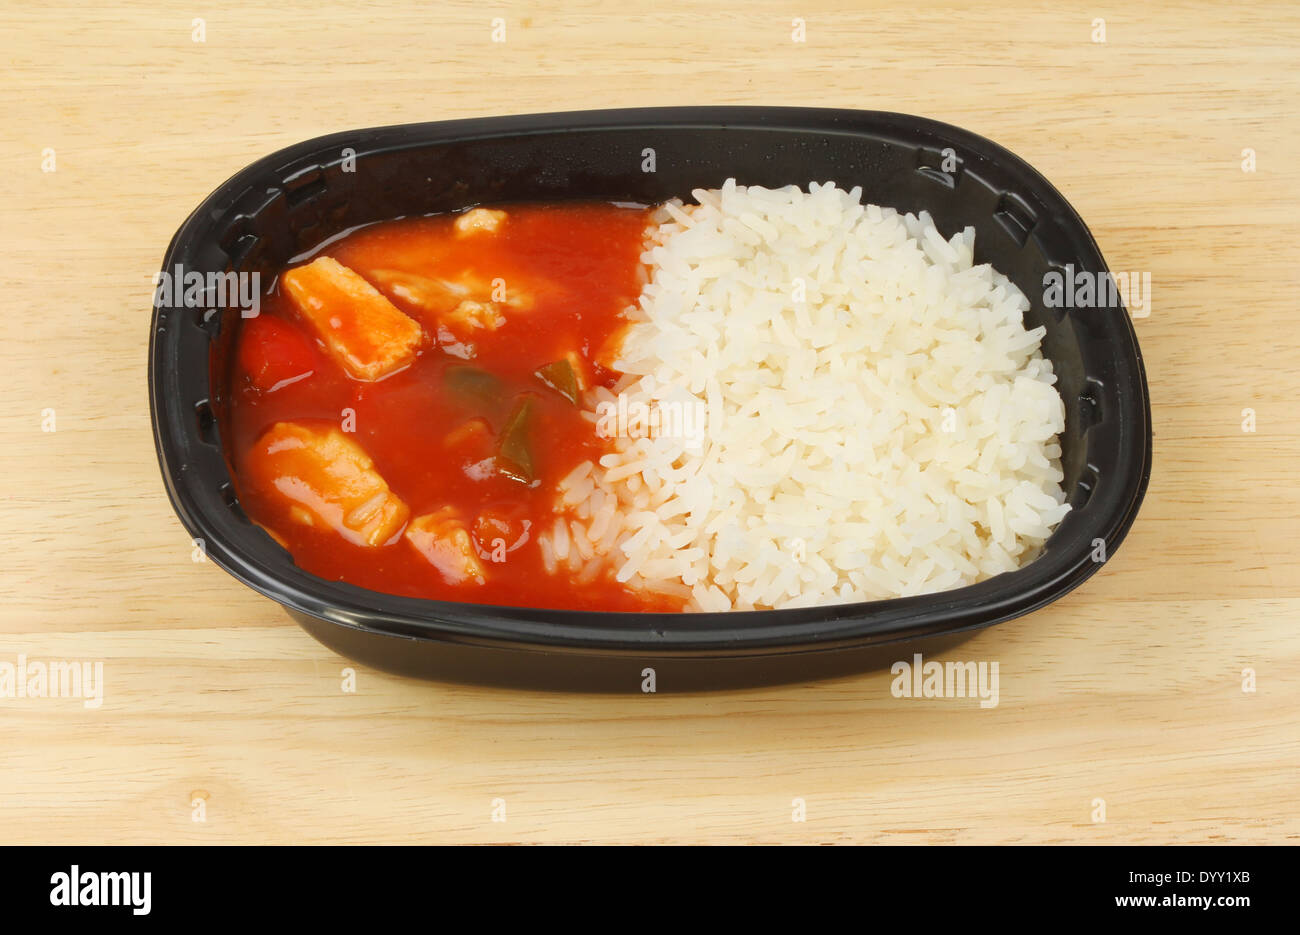 Convenience meal of Chinese sweet and sour chicken in a plastic carton on a wooden worktop - Stock Image